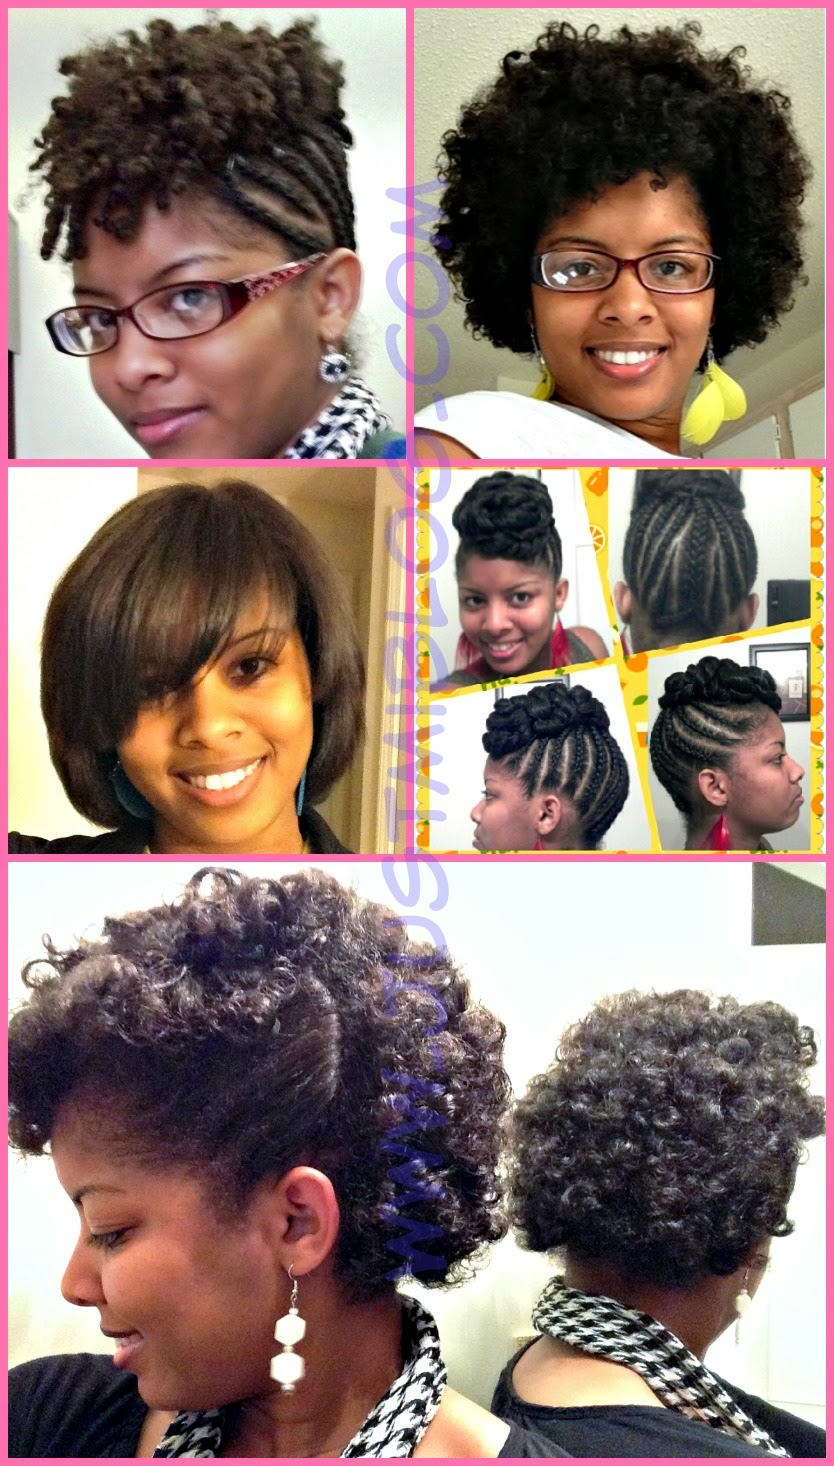 cosmetologist, hair stylist, stylist in DC, protective style, DMV hair salons, traveling hair salons, DMV natural hair salons, natural hair, relaxed hair, DC hair, DC stylists, DMV hair, MD hair, VA hair, Practicality Hair, Practicality Hair and Day Spa, two strand twists, twist out, afro, blowout, straightening natural hair, straight natural hair, natural hair updo, updo for natural hair, curls for natural hair, curl set for natural hair